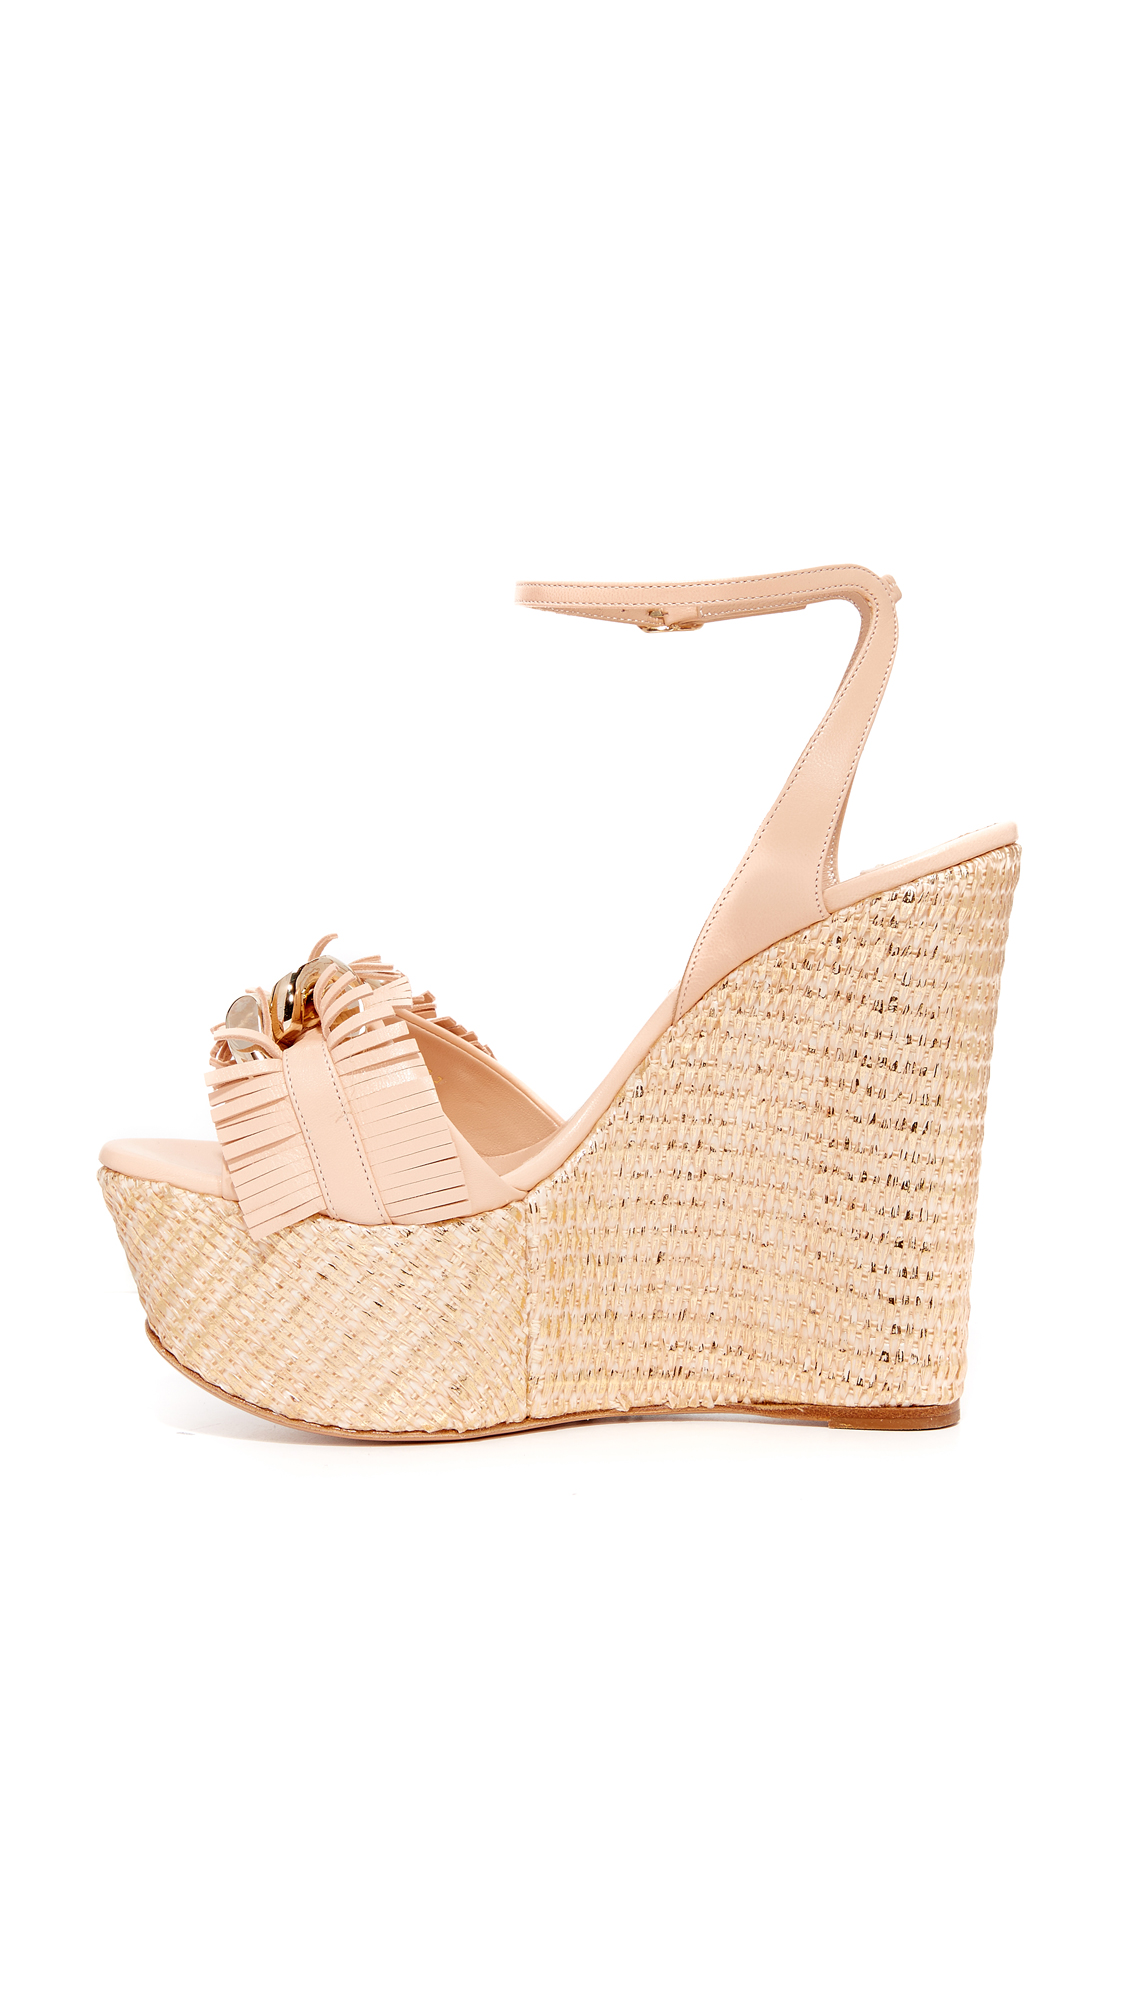 48124780114c Casadei Jeweled Wedge Sandals